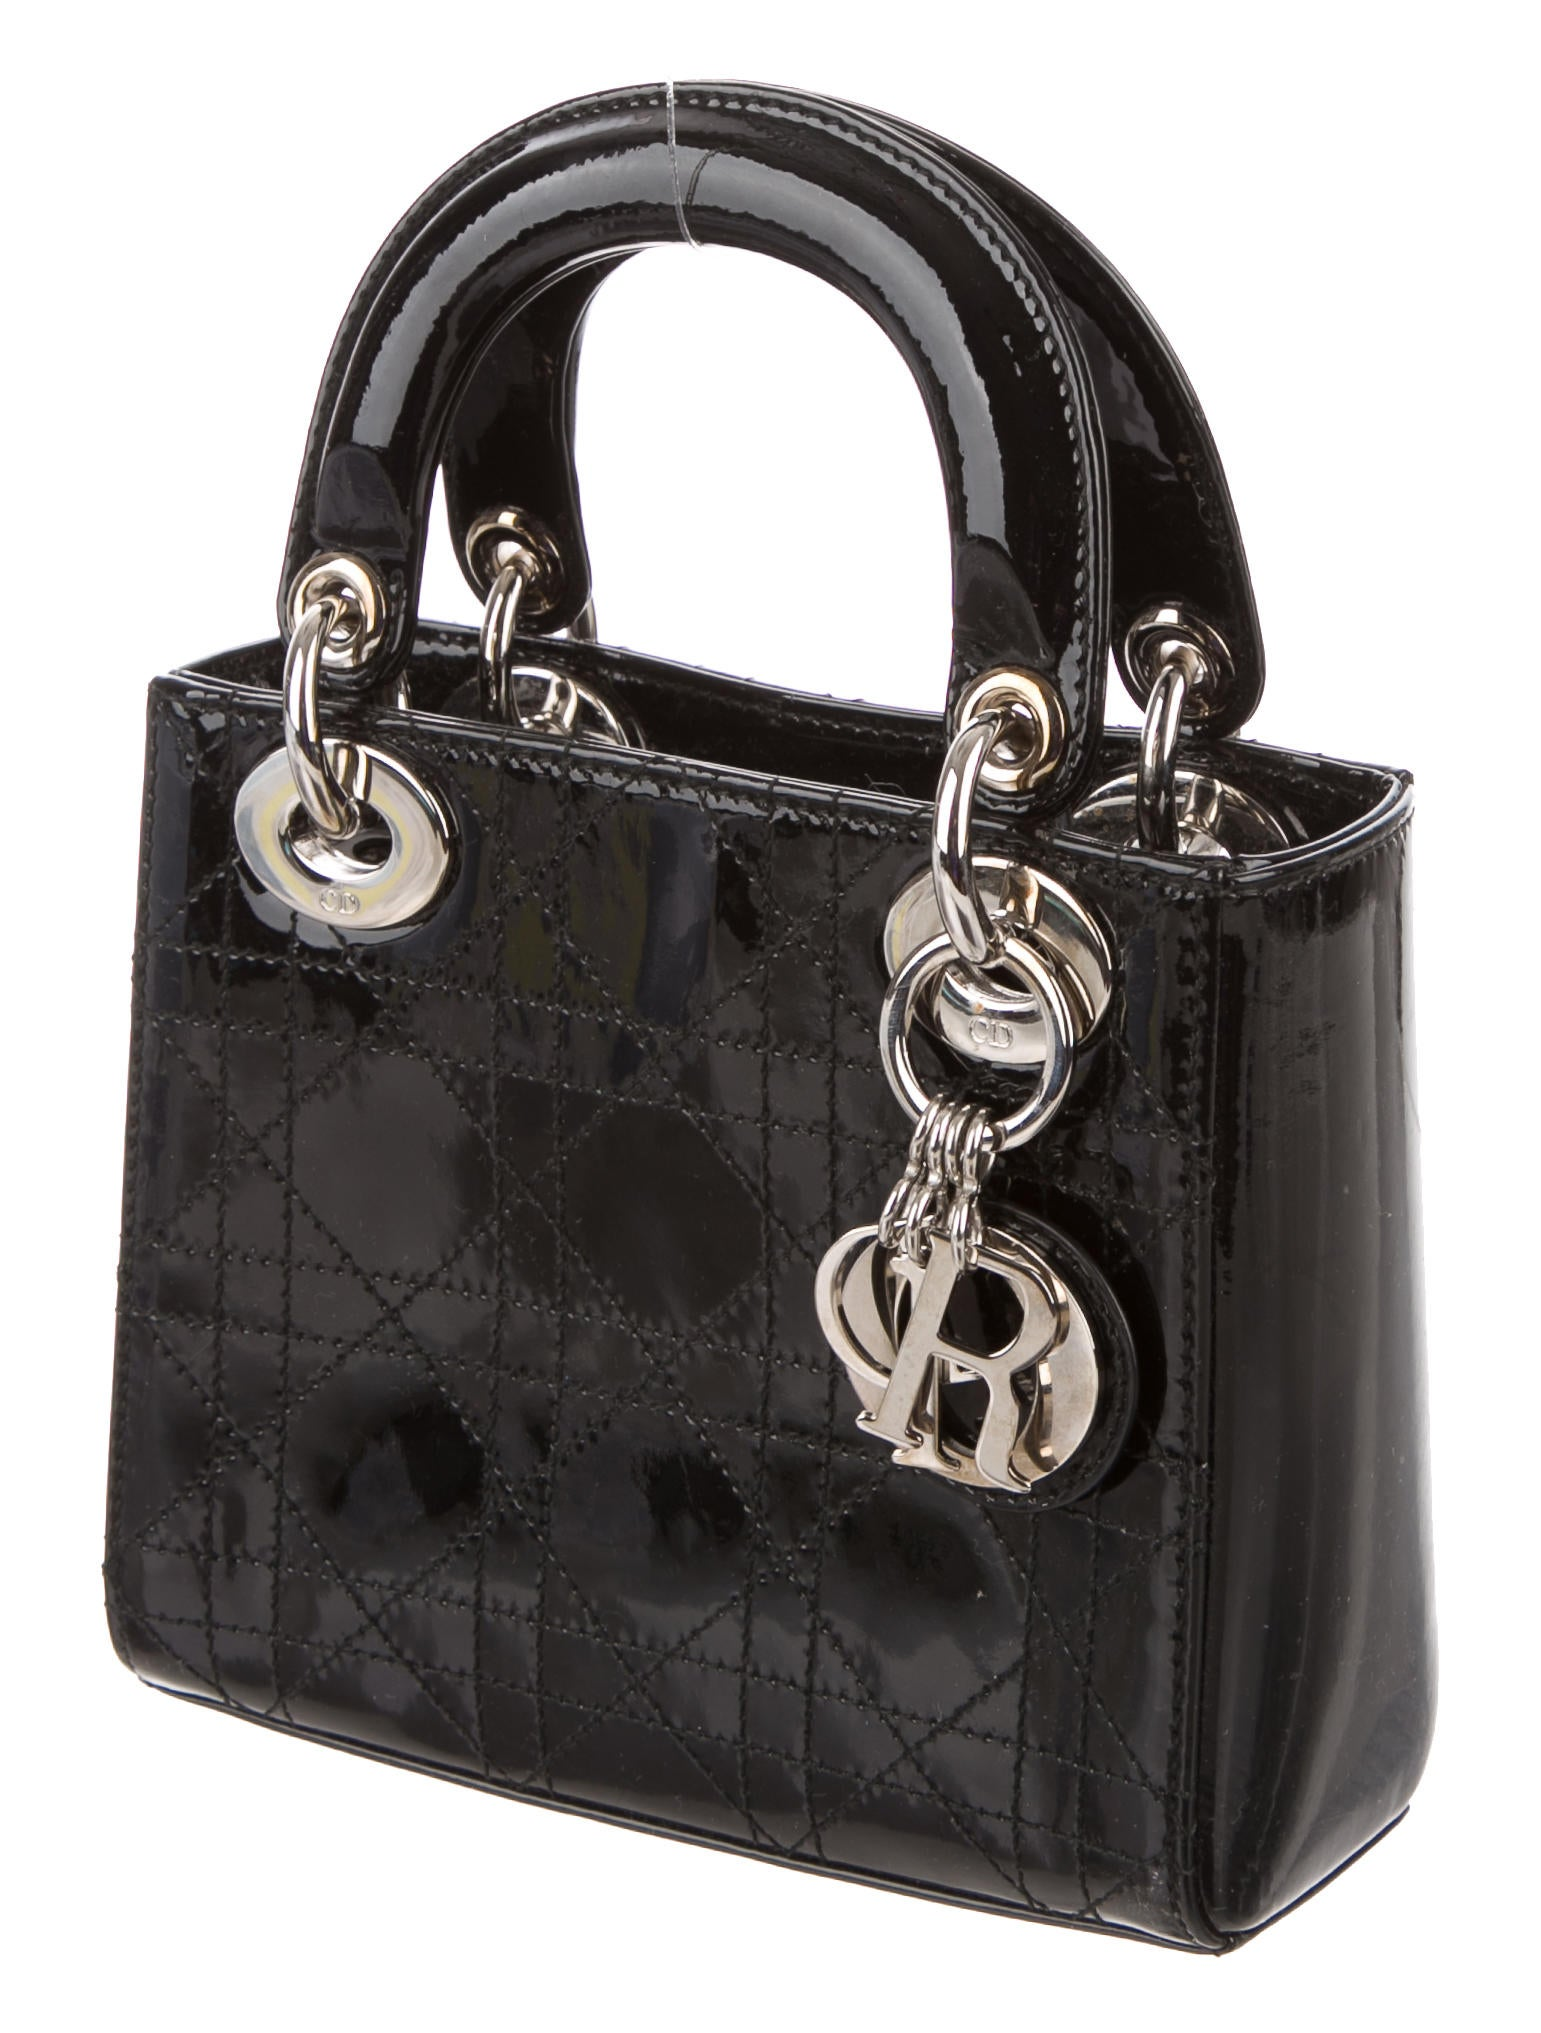 The bag lady purses - Compare Prices & Store Ratings at warmongeri.gae Selection· Big Deals· Comparison Shopping· Top Brands.